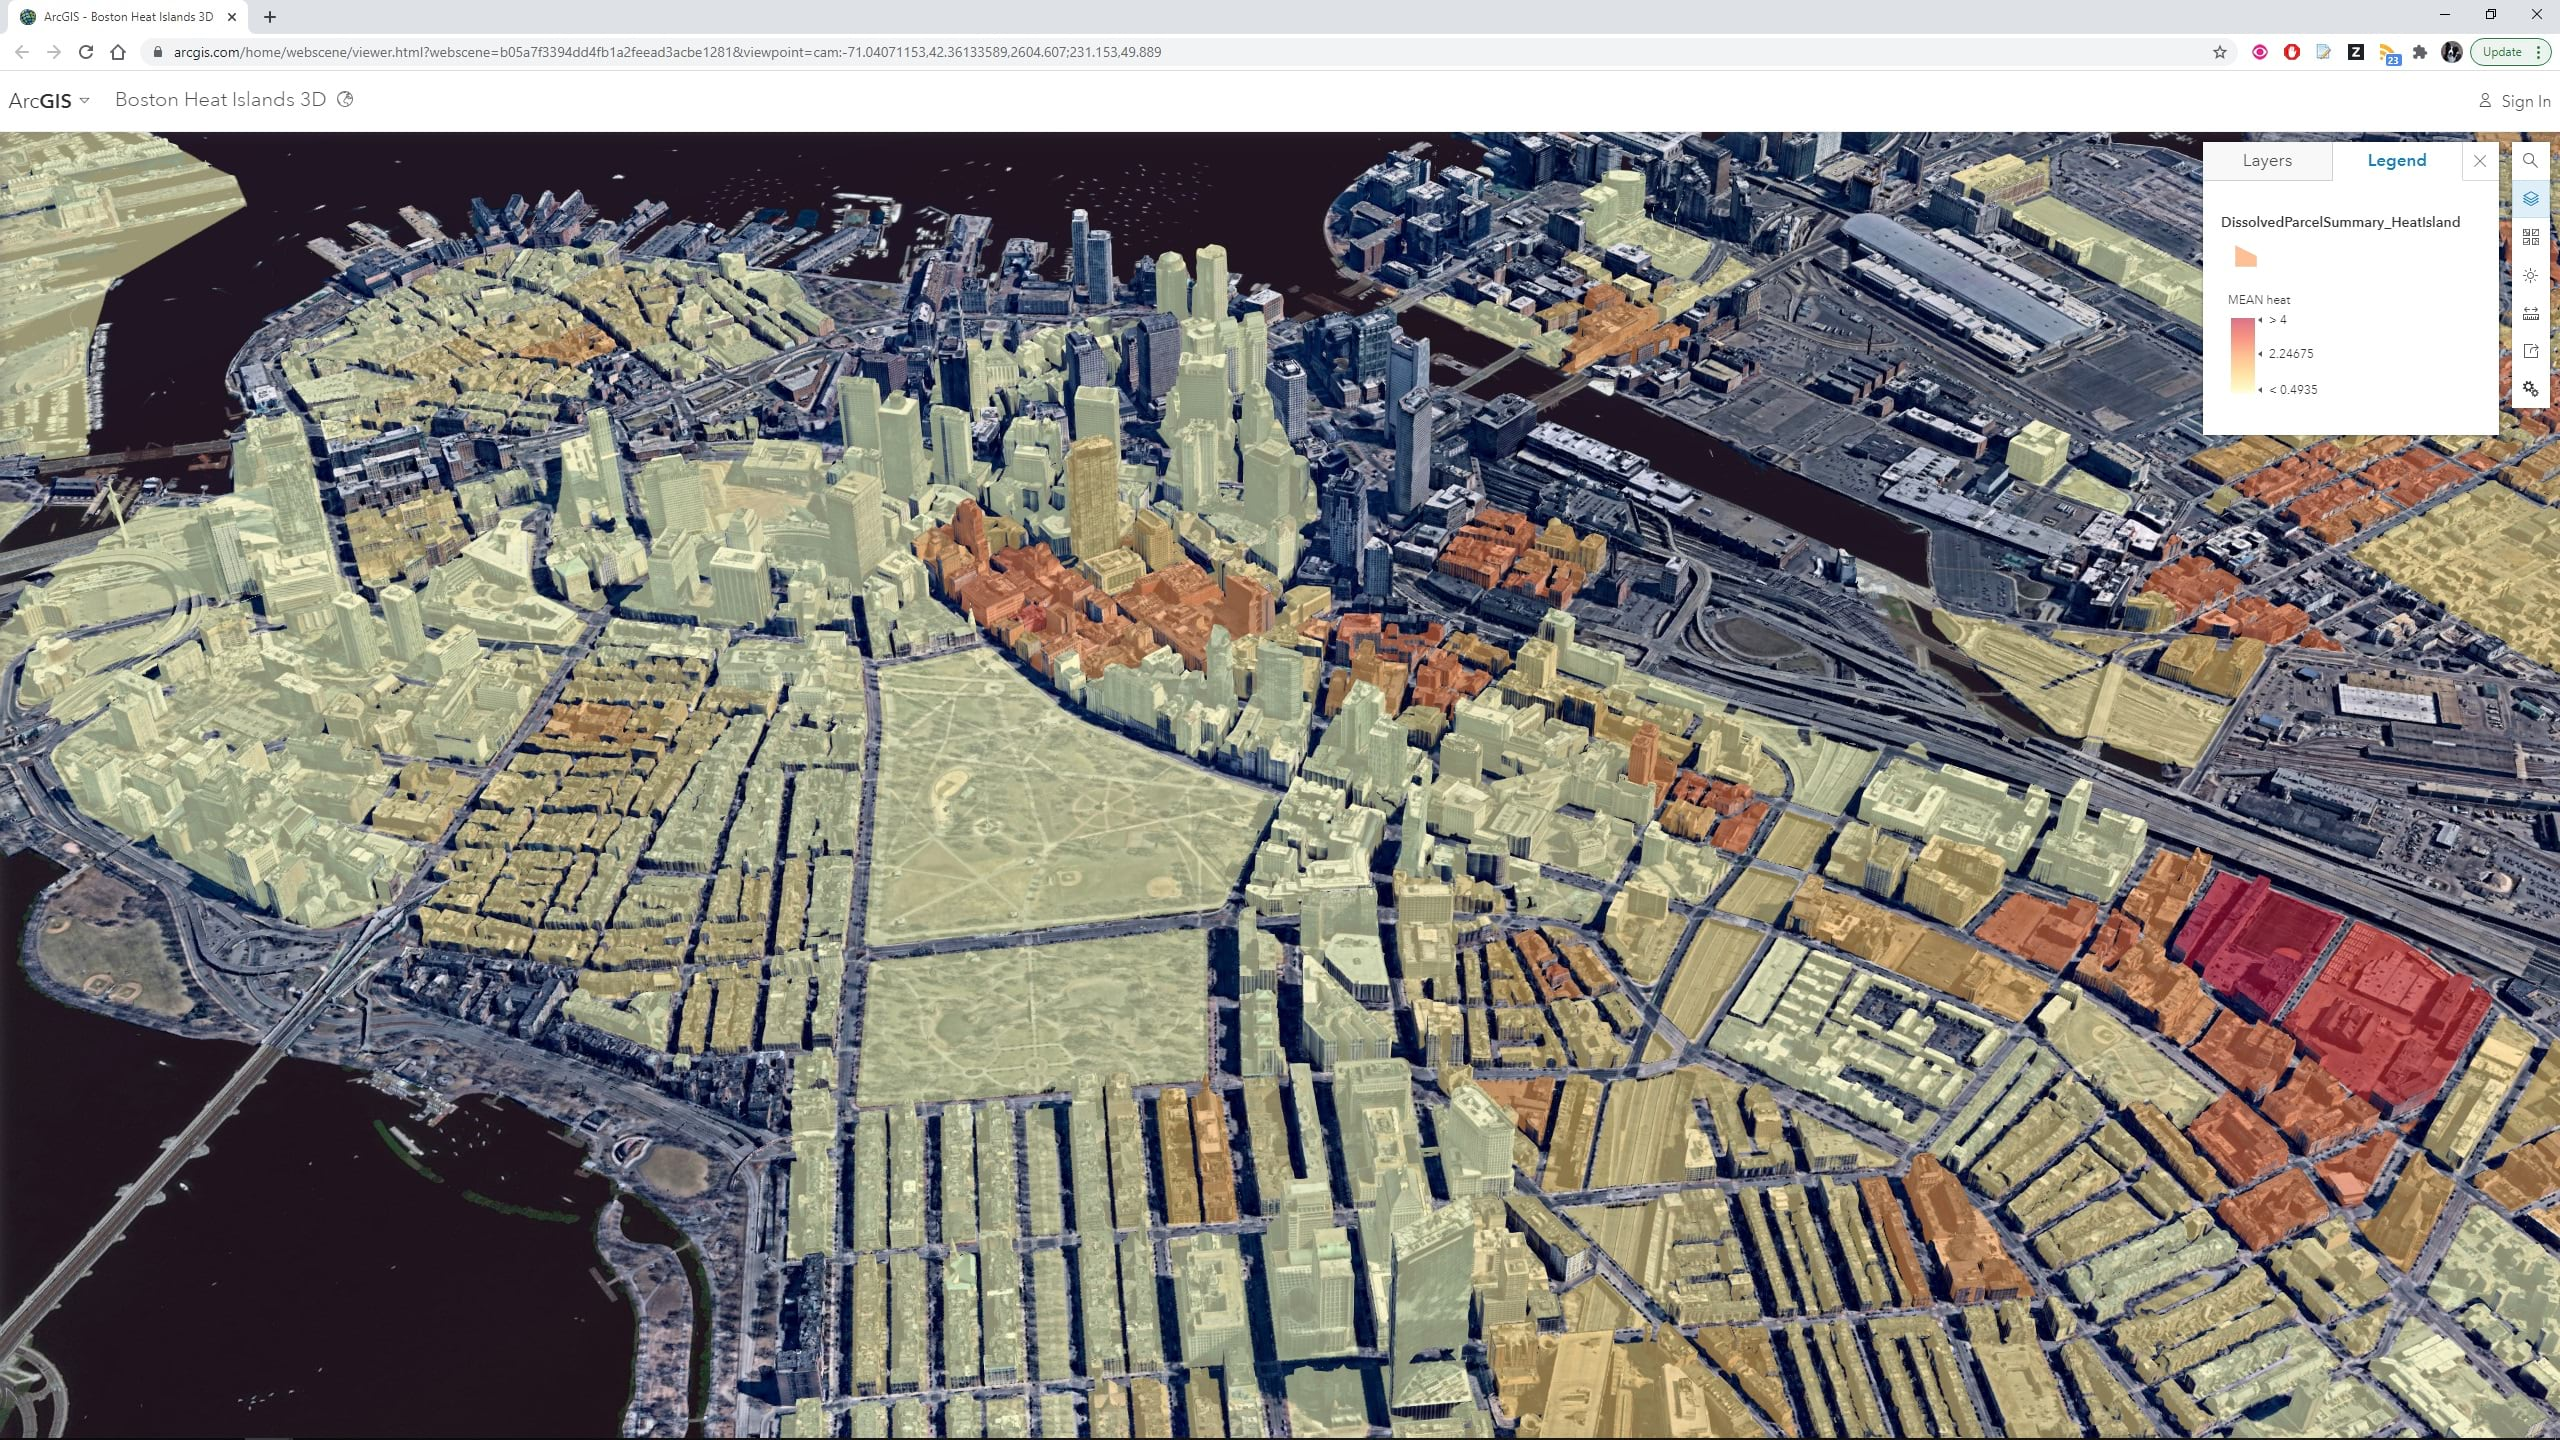 Urban heat analysis in Boston showing Nearmap I3S mesh